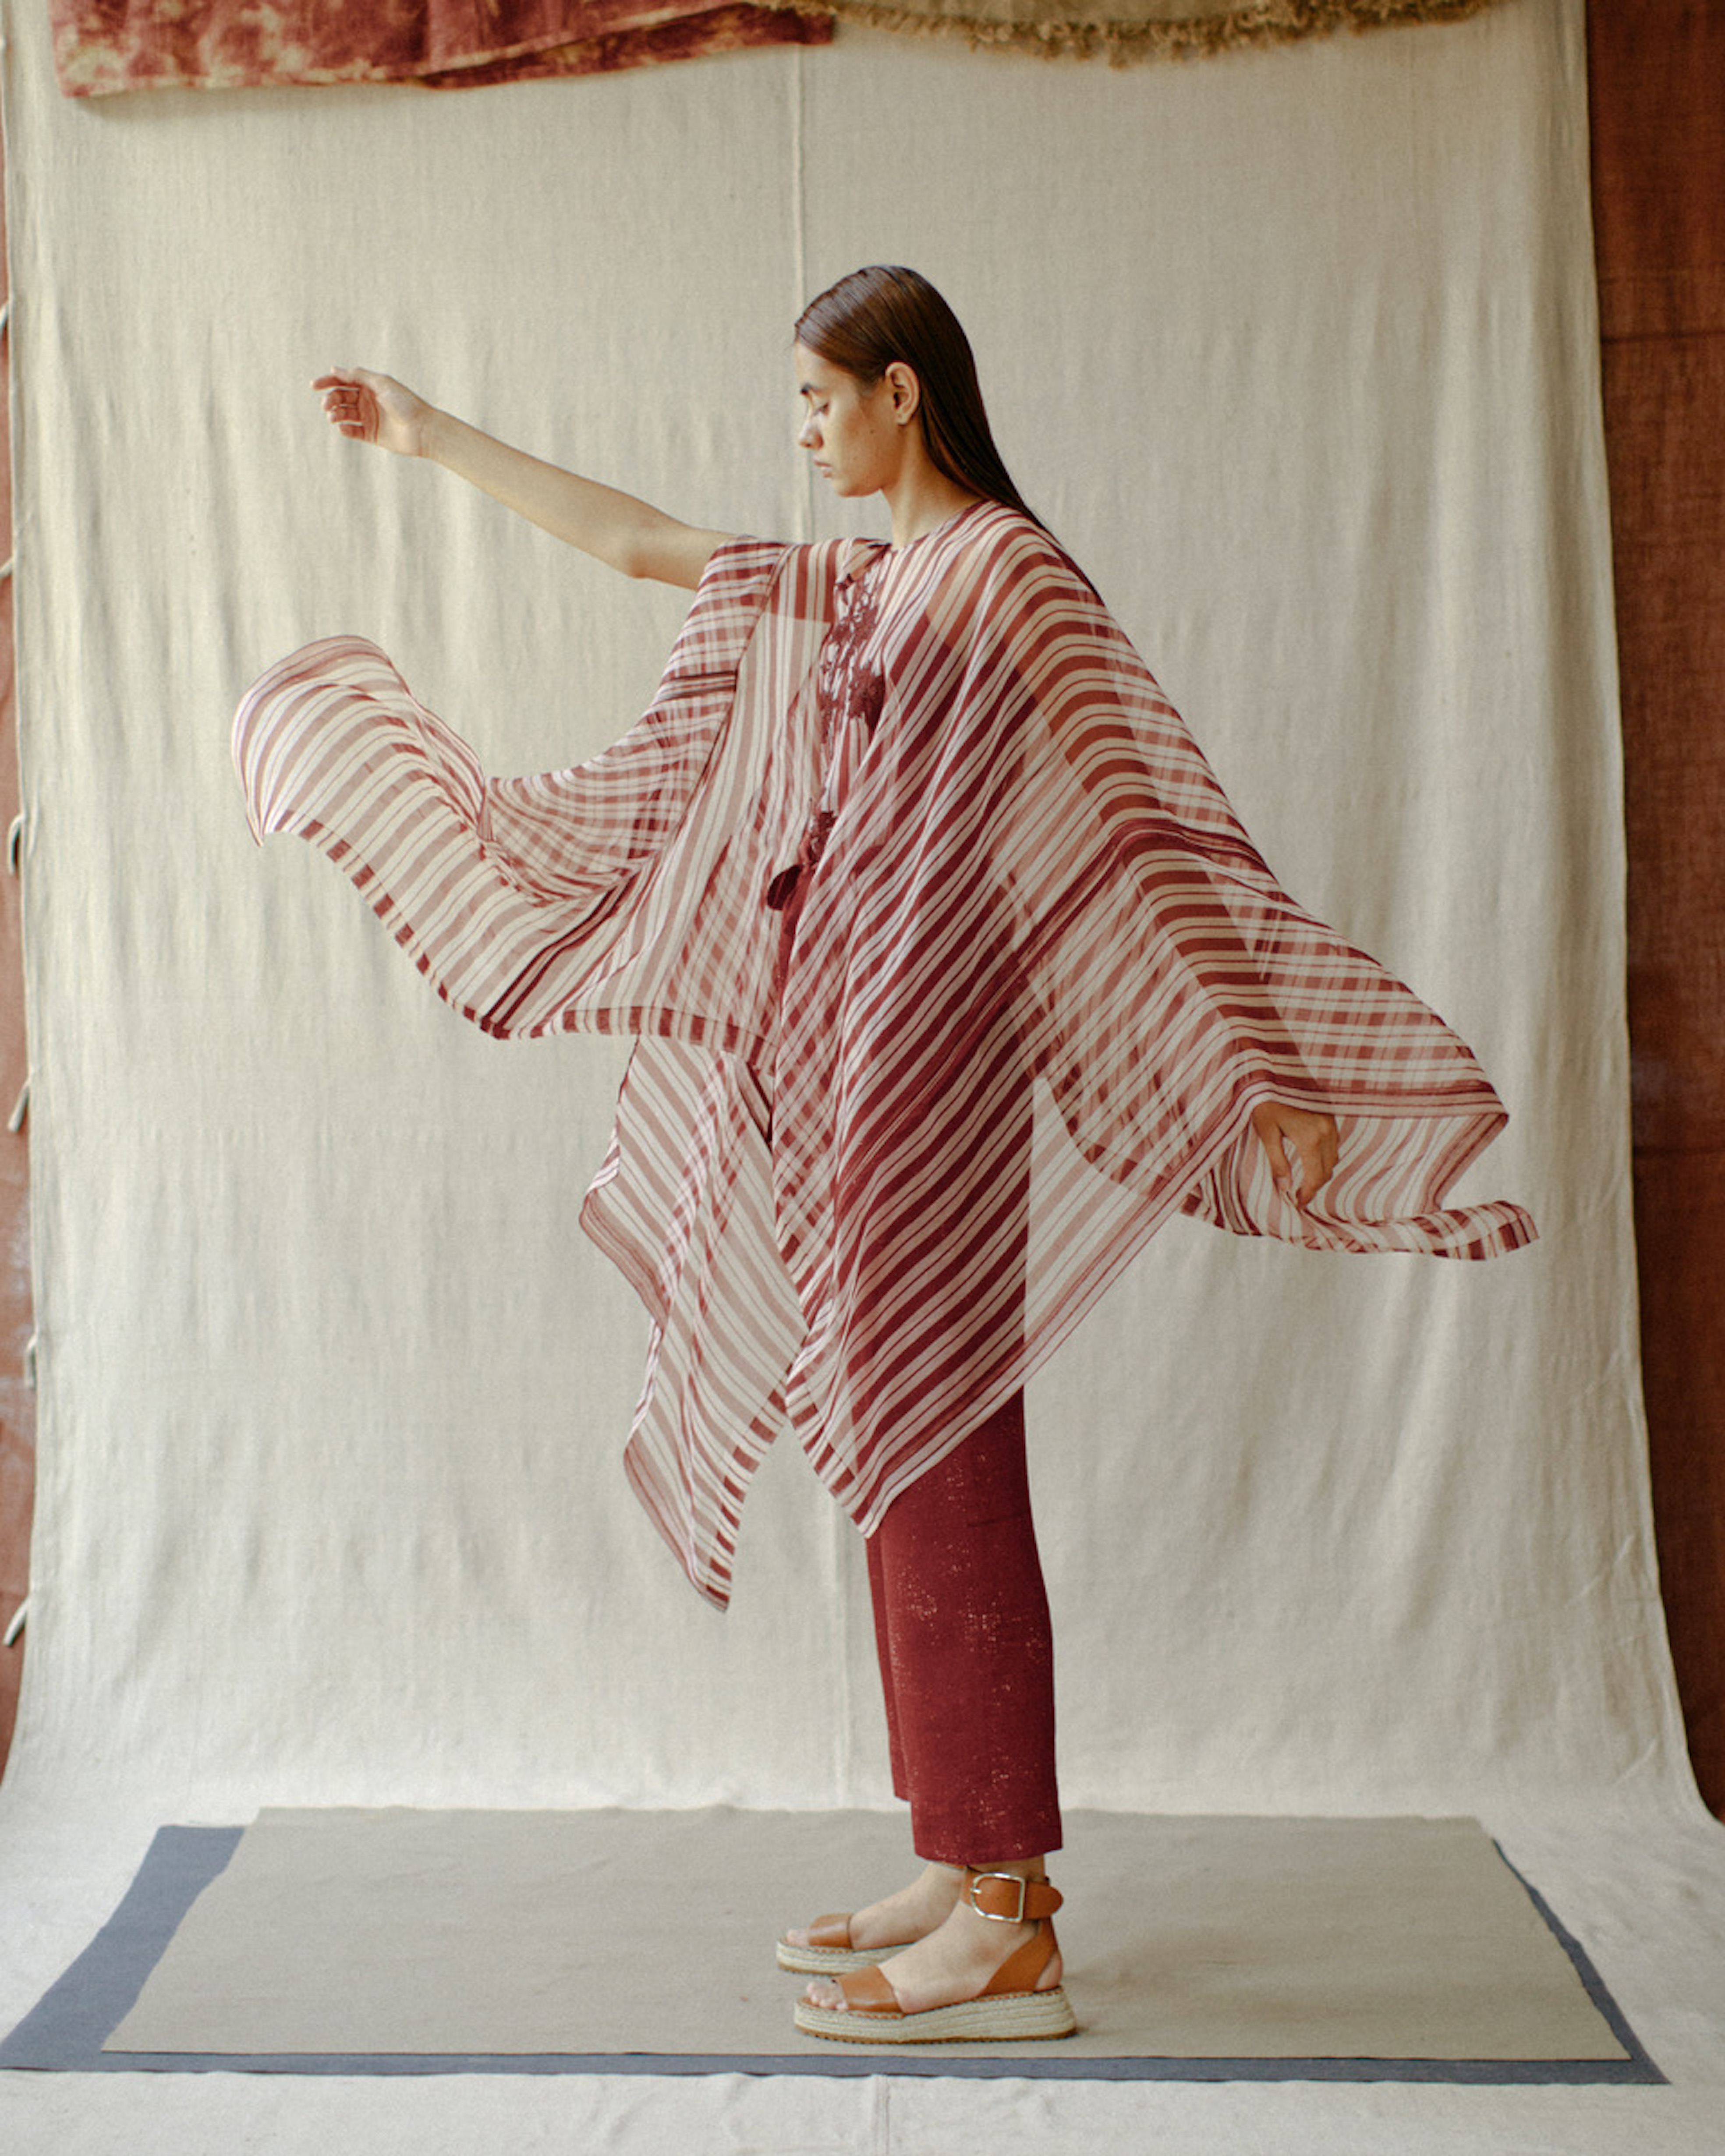 Buy the best of Indian textiles at this new designer exhibition in Delhi